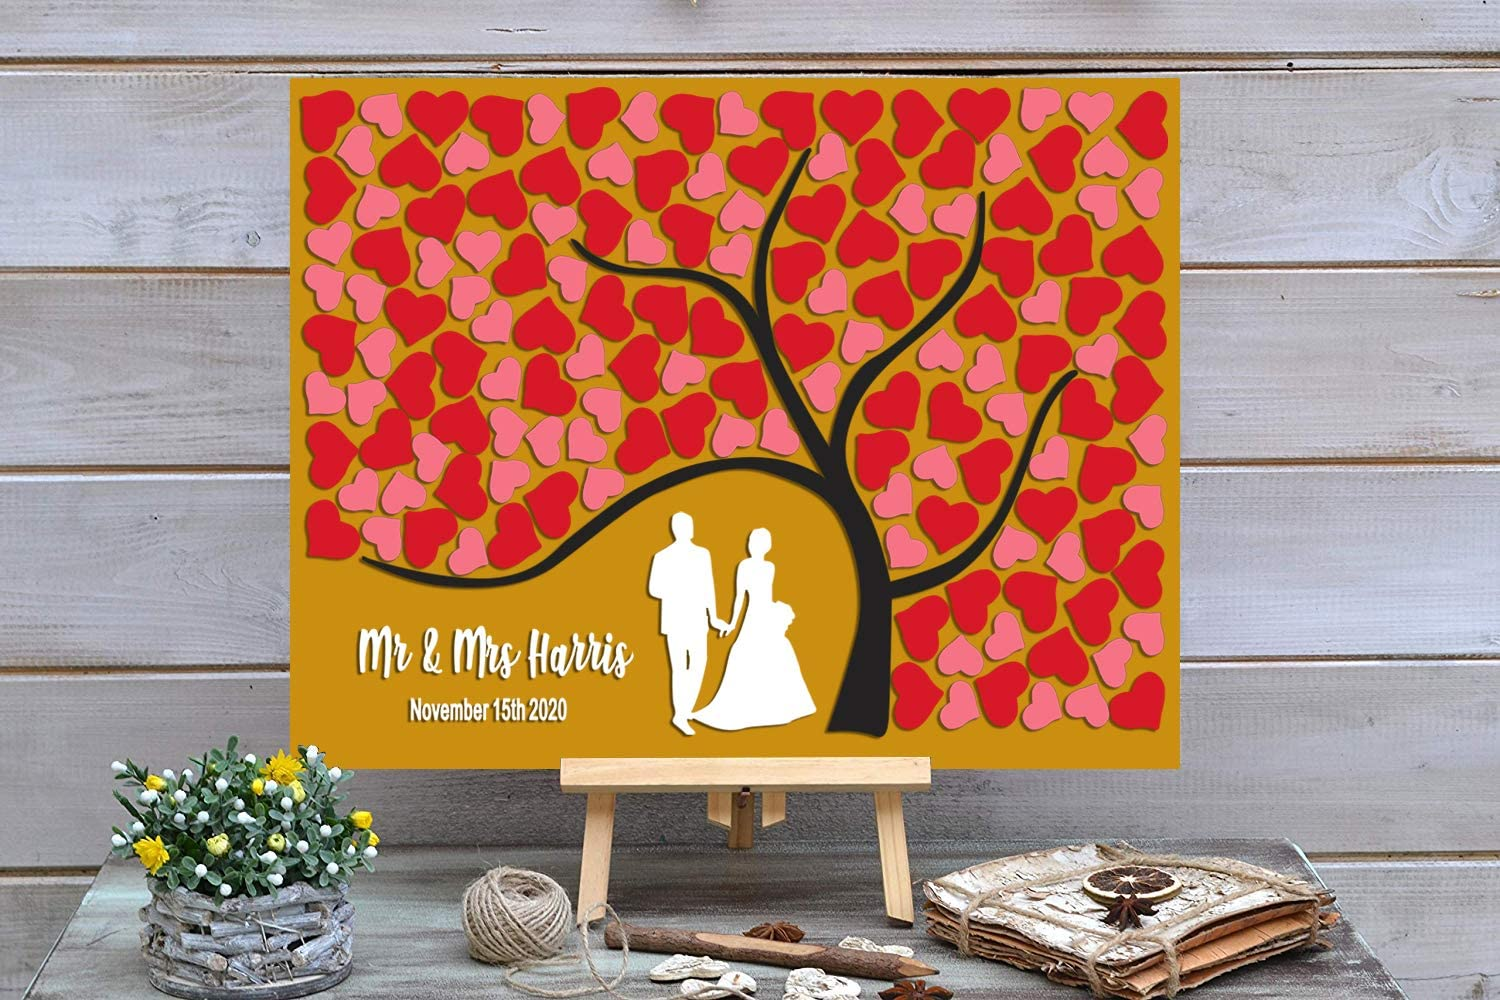 PotteLove Personalized Rustic Wooden Wedding with Max 42% OFF Red Luxury goods Guest Book